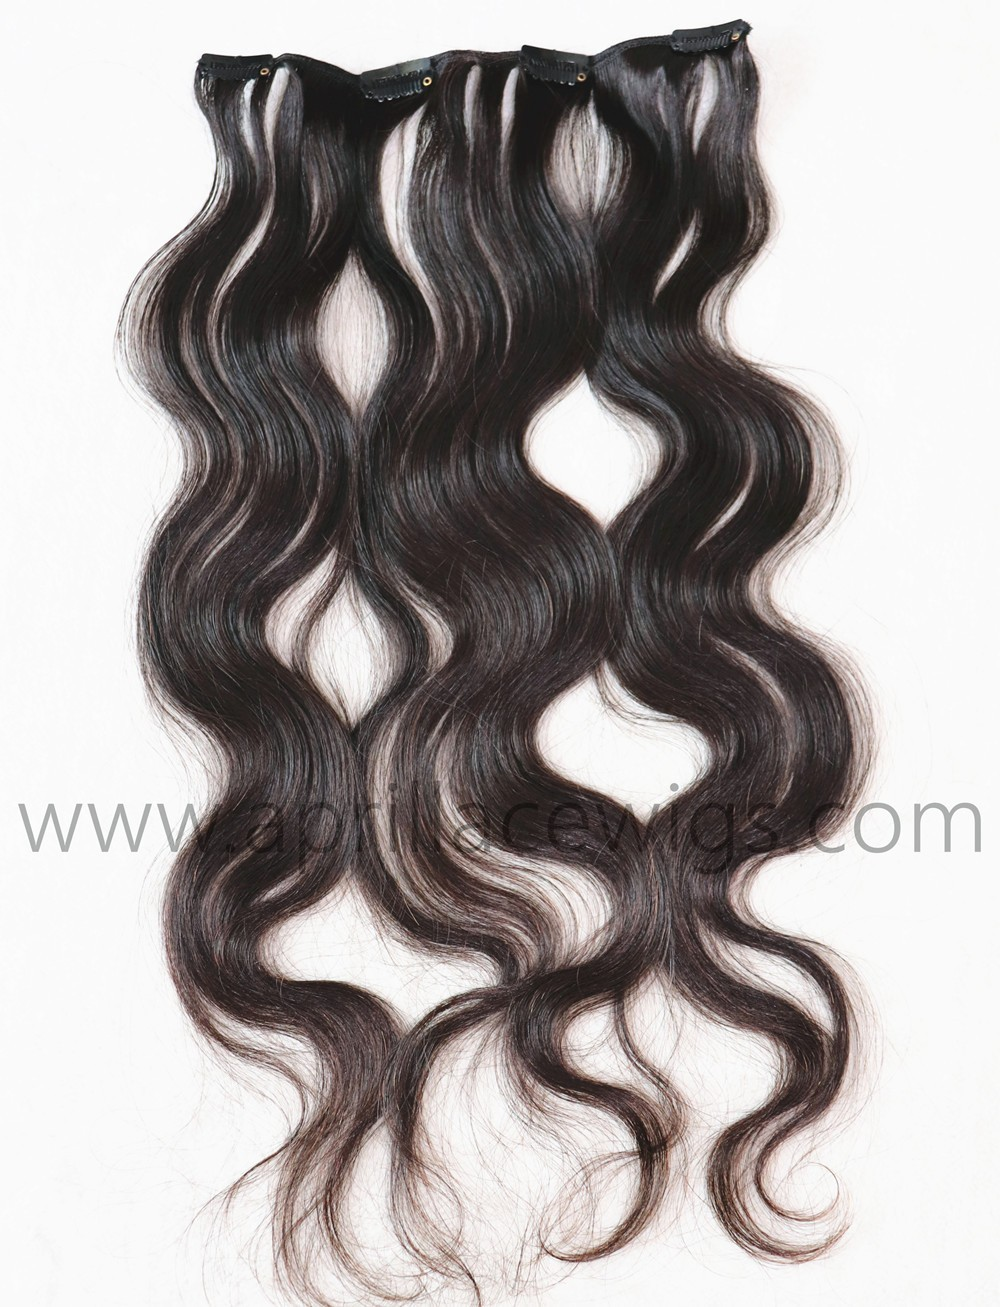 body wave clip in extensions, ody wave hair weaving